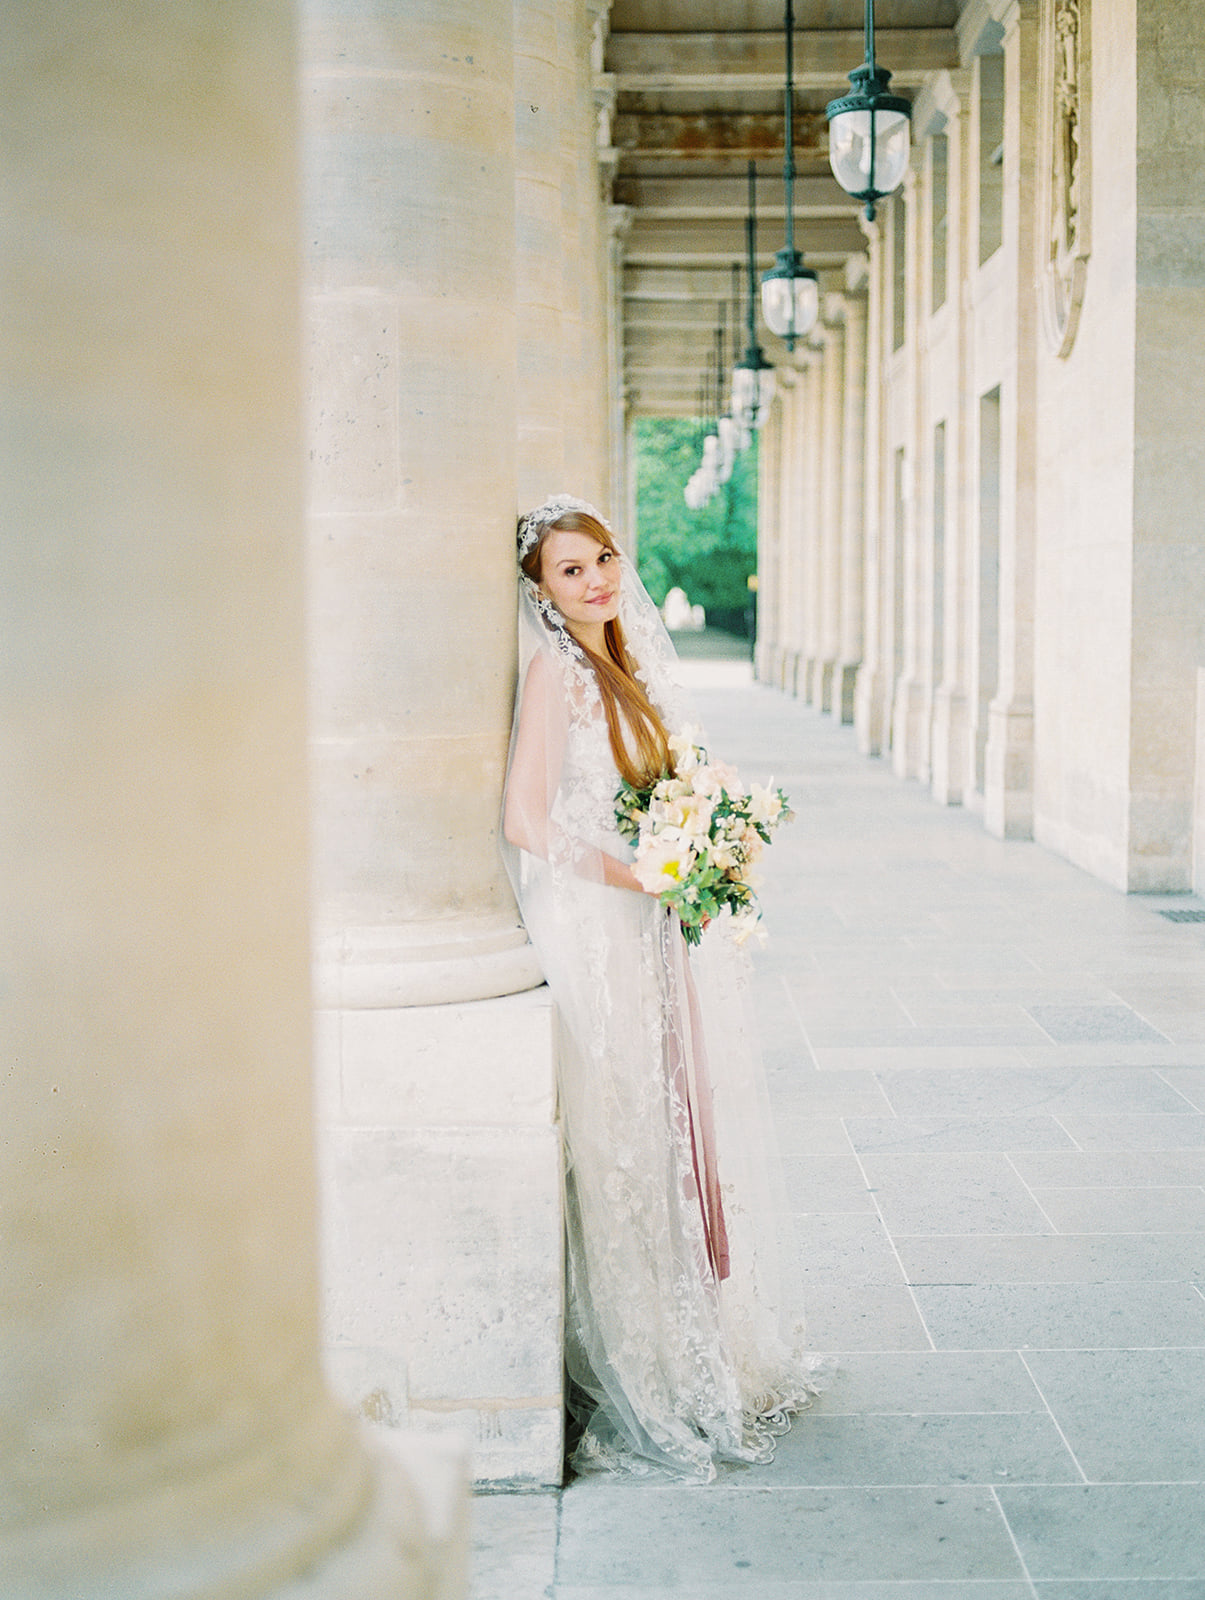 Paris Bridal Inspiration | Paris Wedding | Paris Photographer | Orange and Yellow Wedding | Jessica Rieke Photography | Canadian Wedding Blog | Fine Art Wedding Blog | Joy Wed